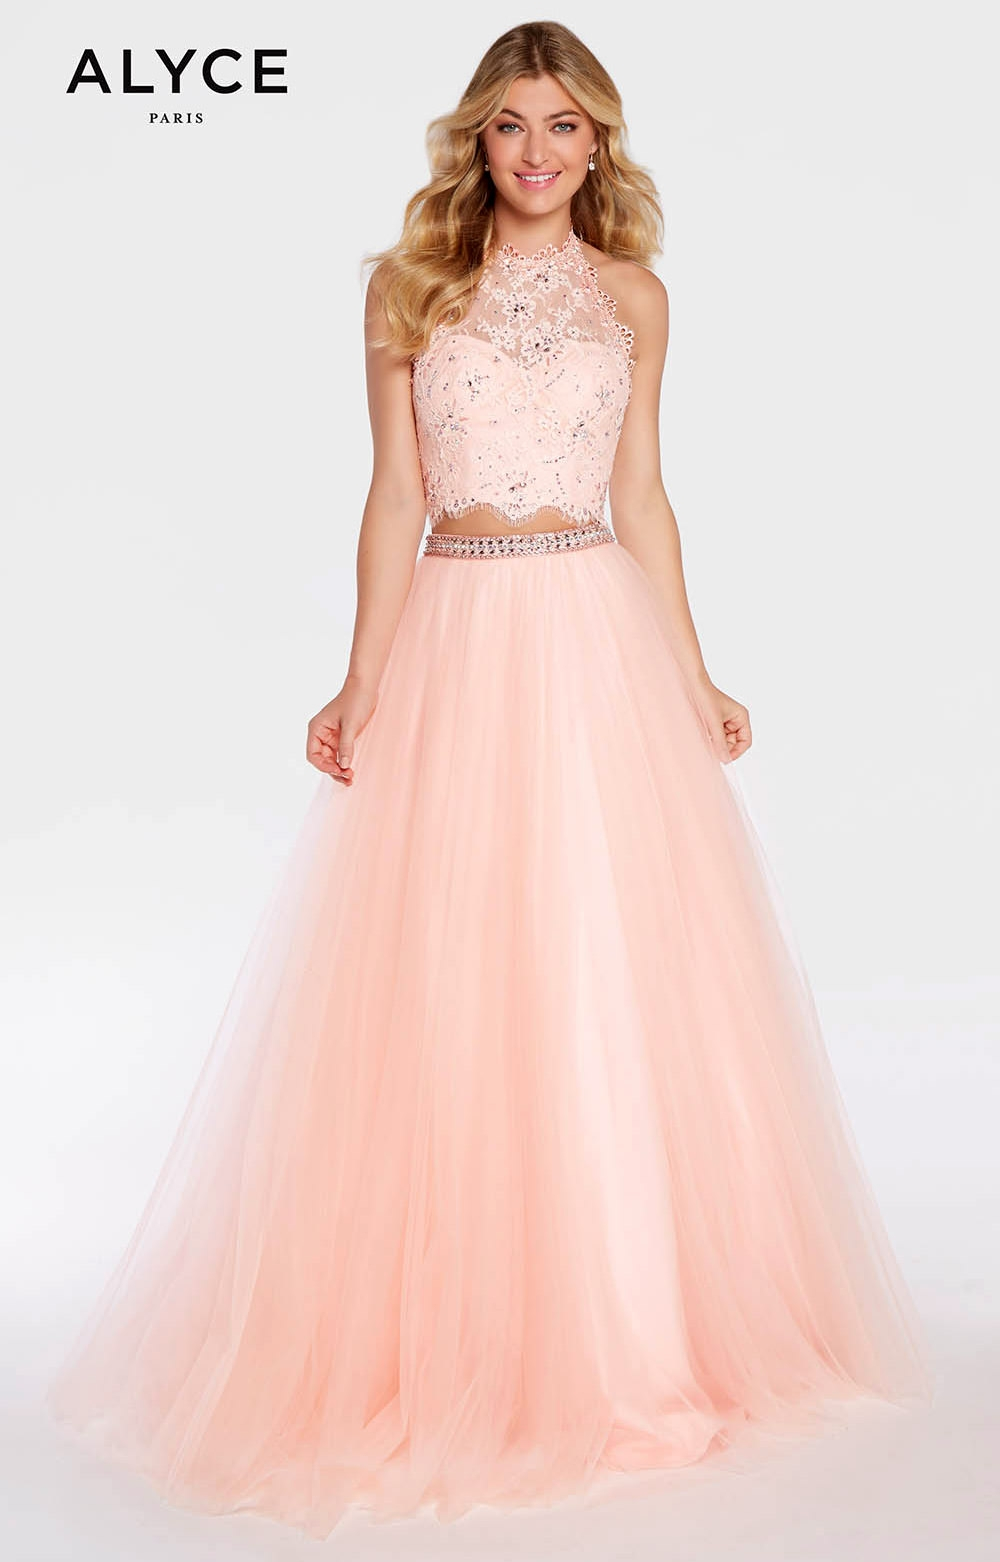 Alyce Paris 1299 - Long 2 Piece Tulle Ball Gown Prom Dress